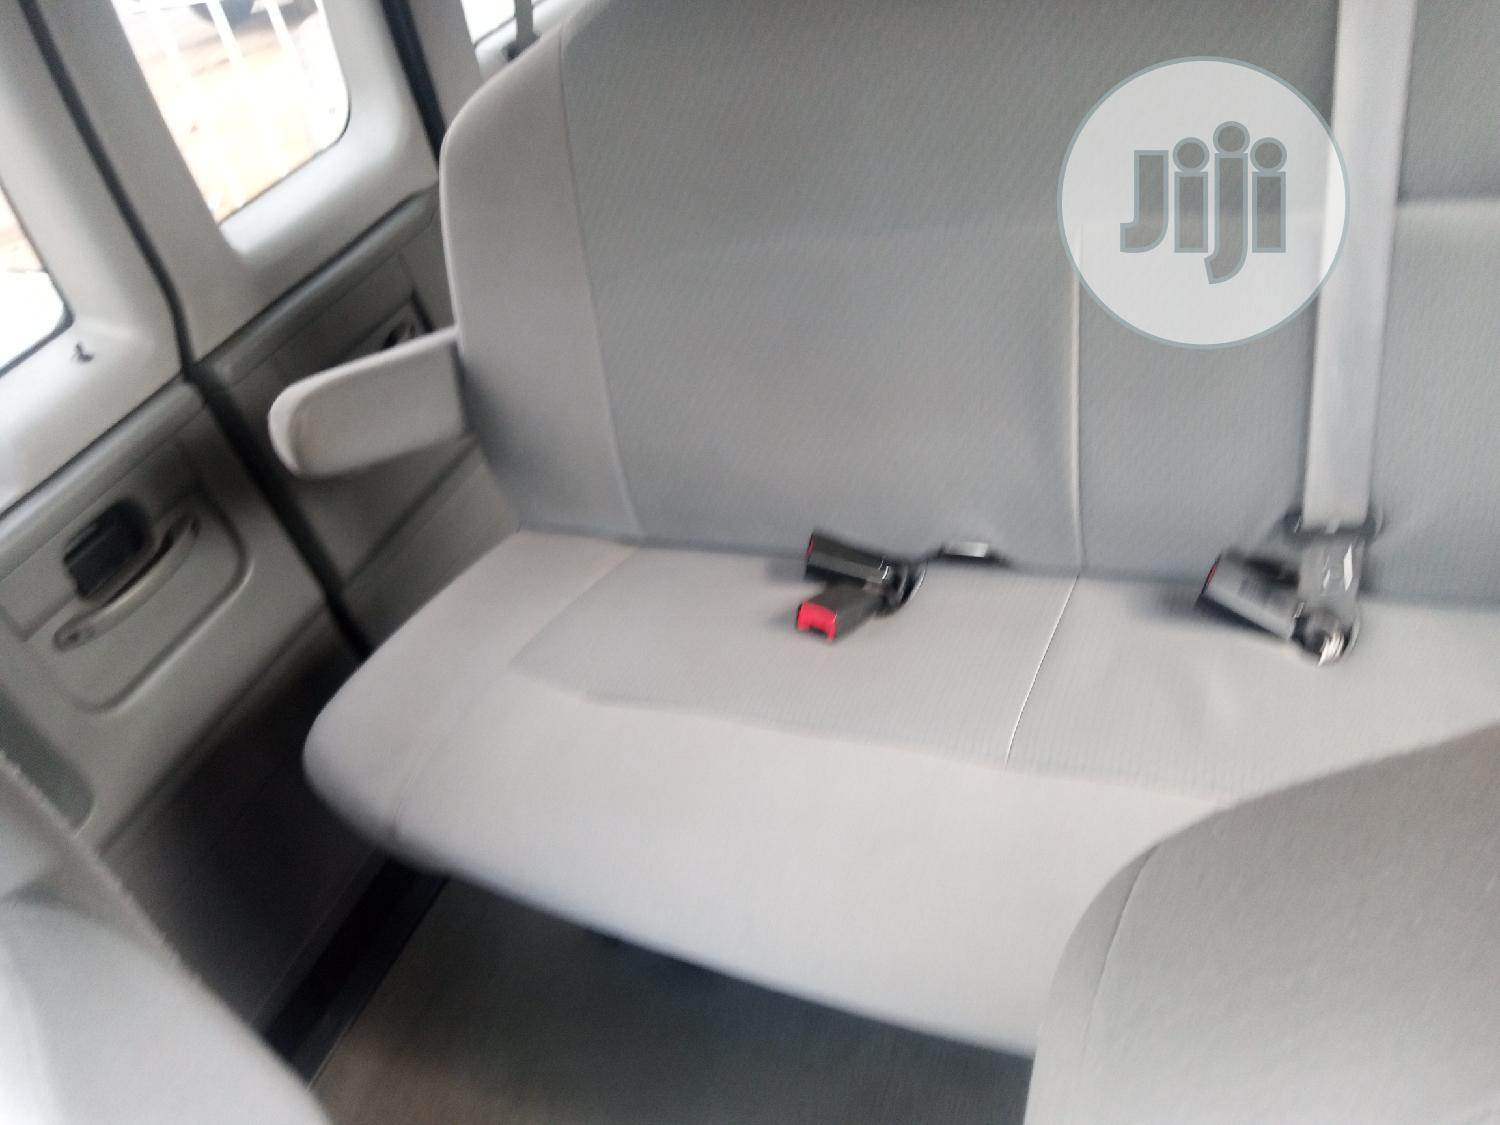 2010 Ford E350 Very Clean Accident Free Fabric Run And Drive | Buses & Microbuses for sale in Ikeja, Lagos State, Nigeria